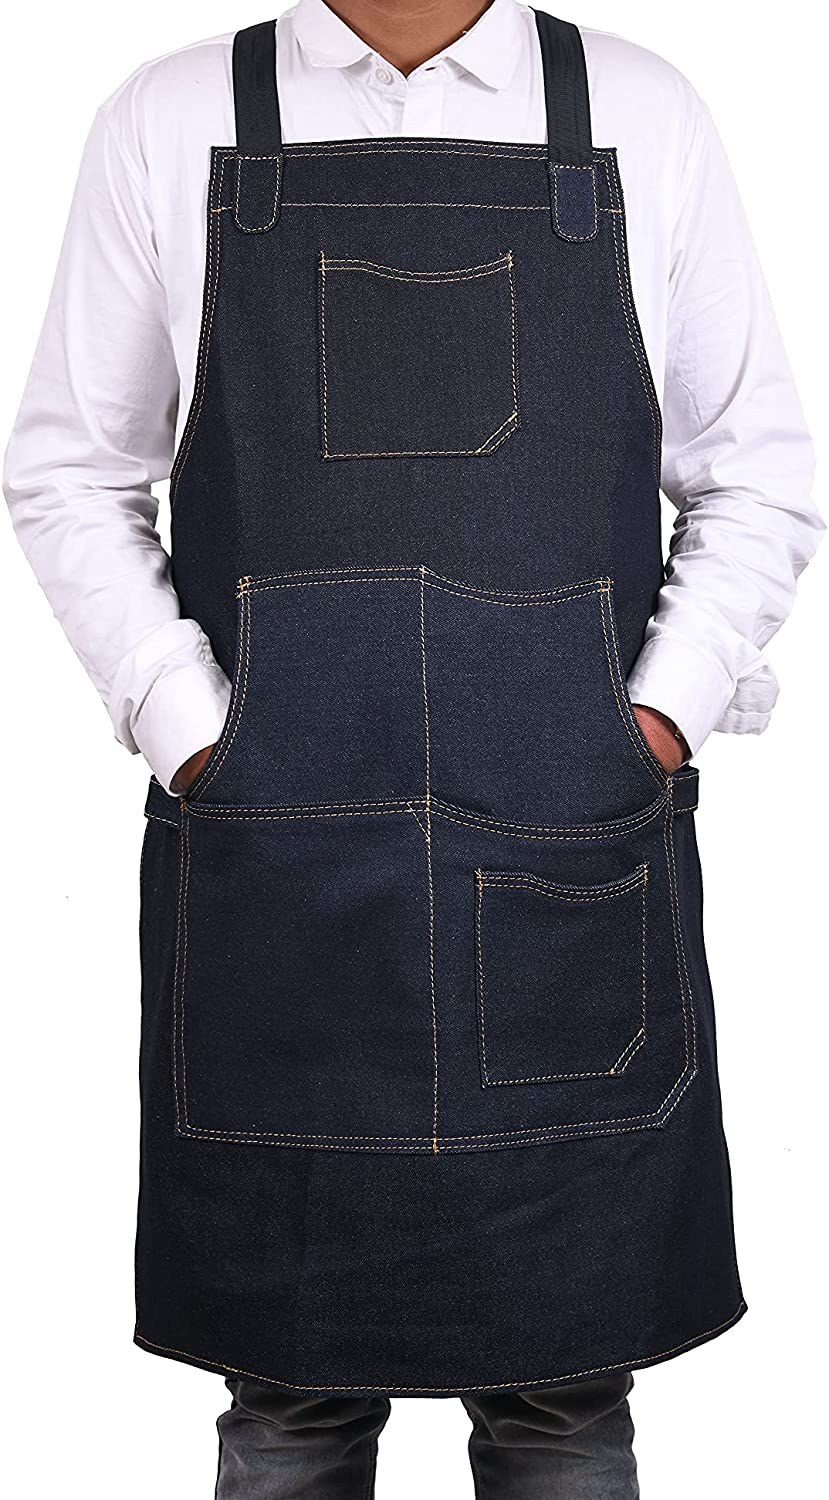 One Size Fits Utility Apron | Adjustable Cross-Back Straps | Multi-Use Shop Apron With Tool Pockets By Aaron Leather Goods